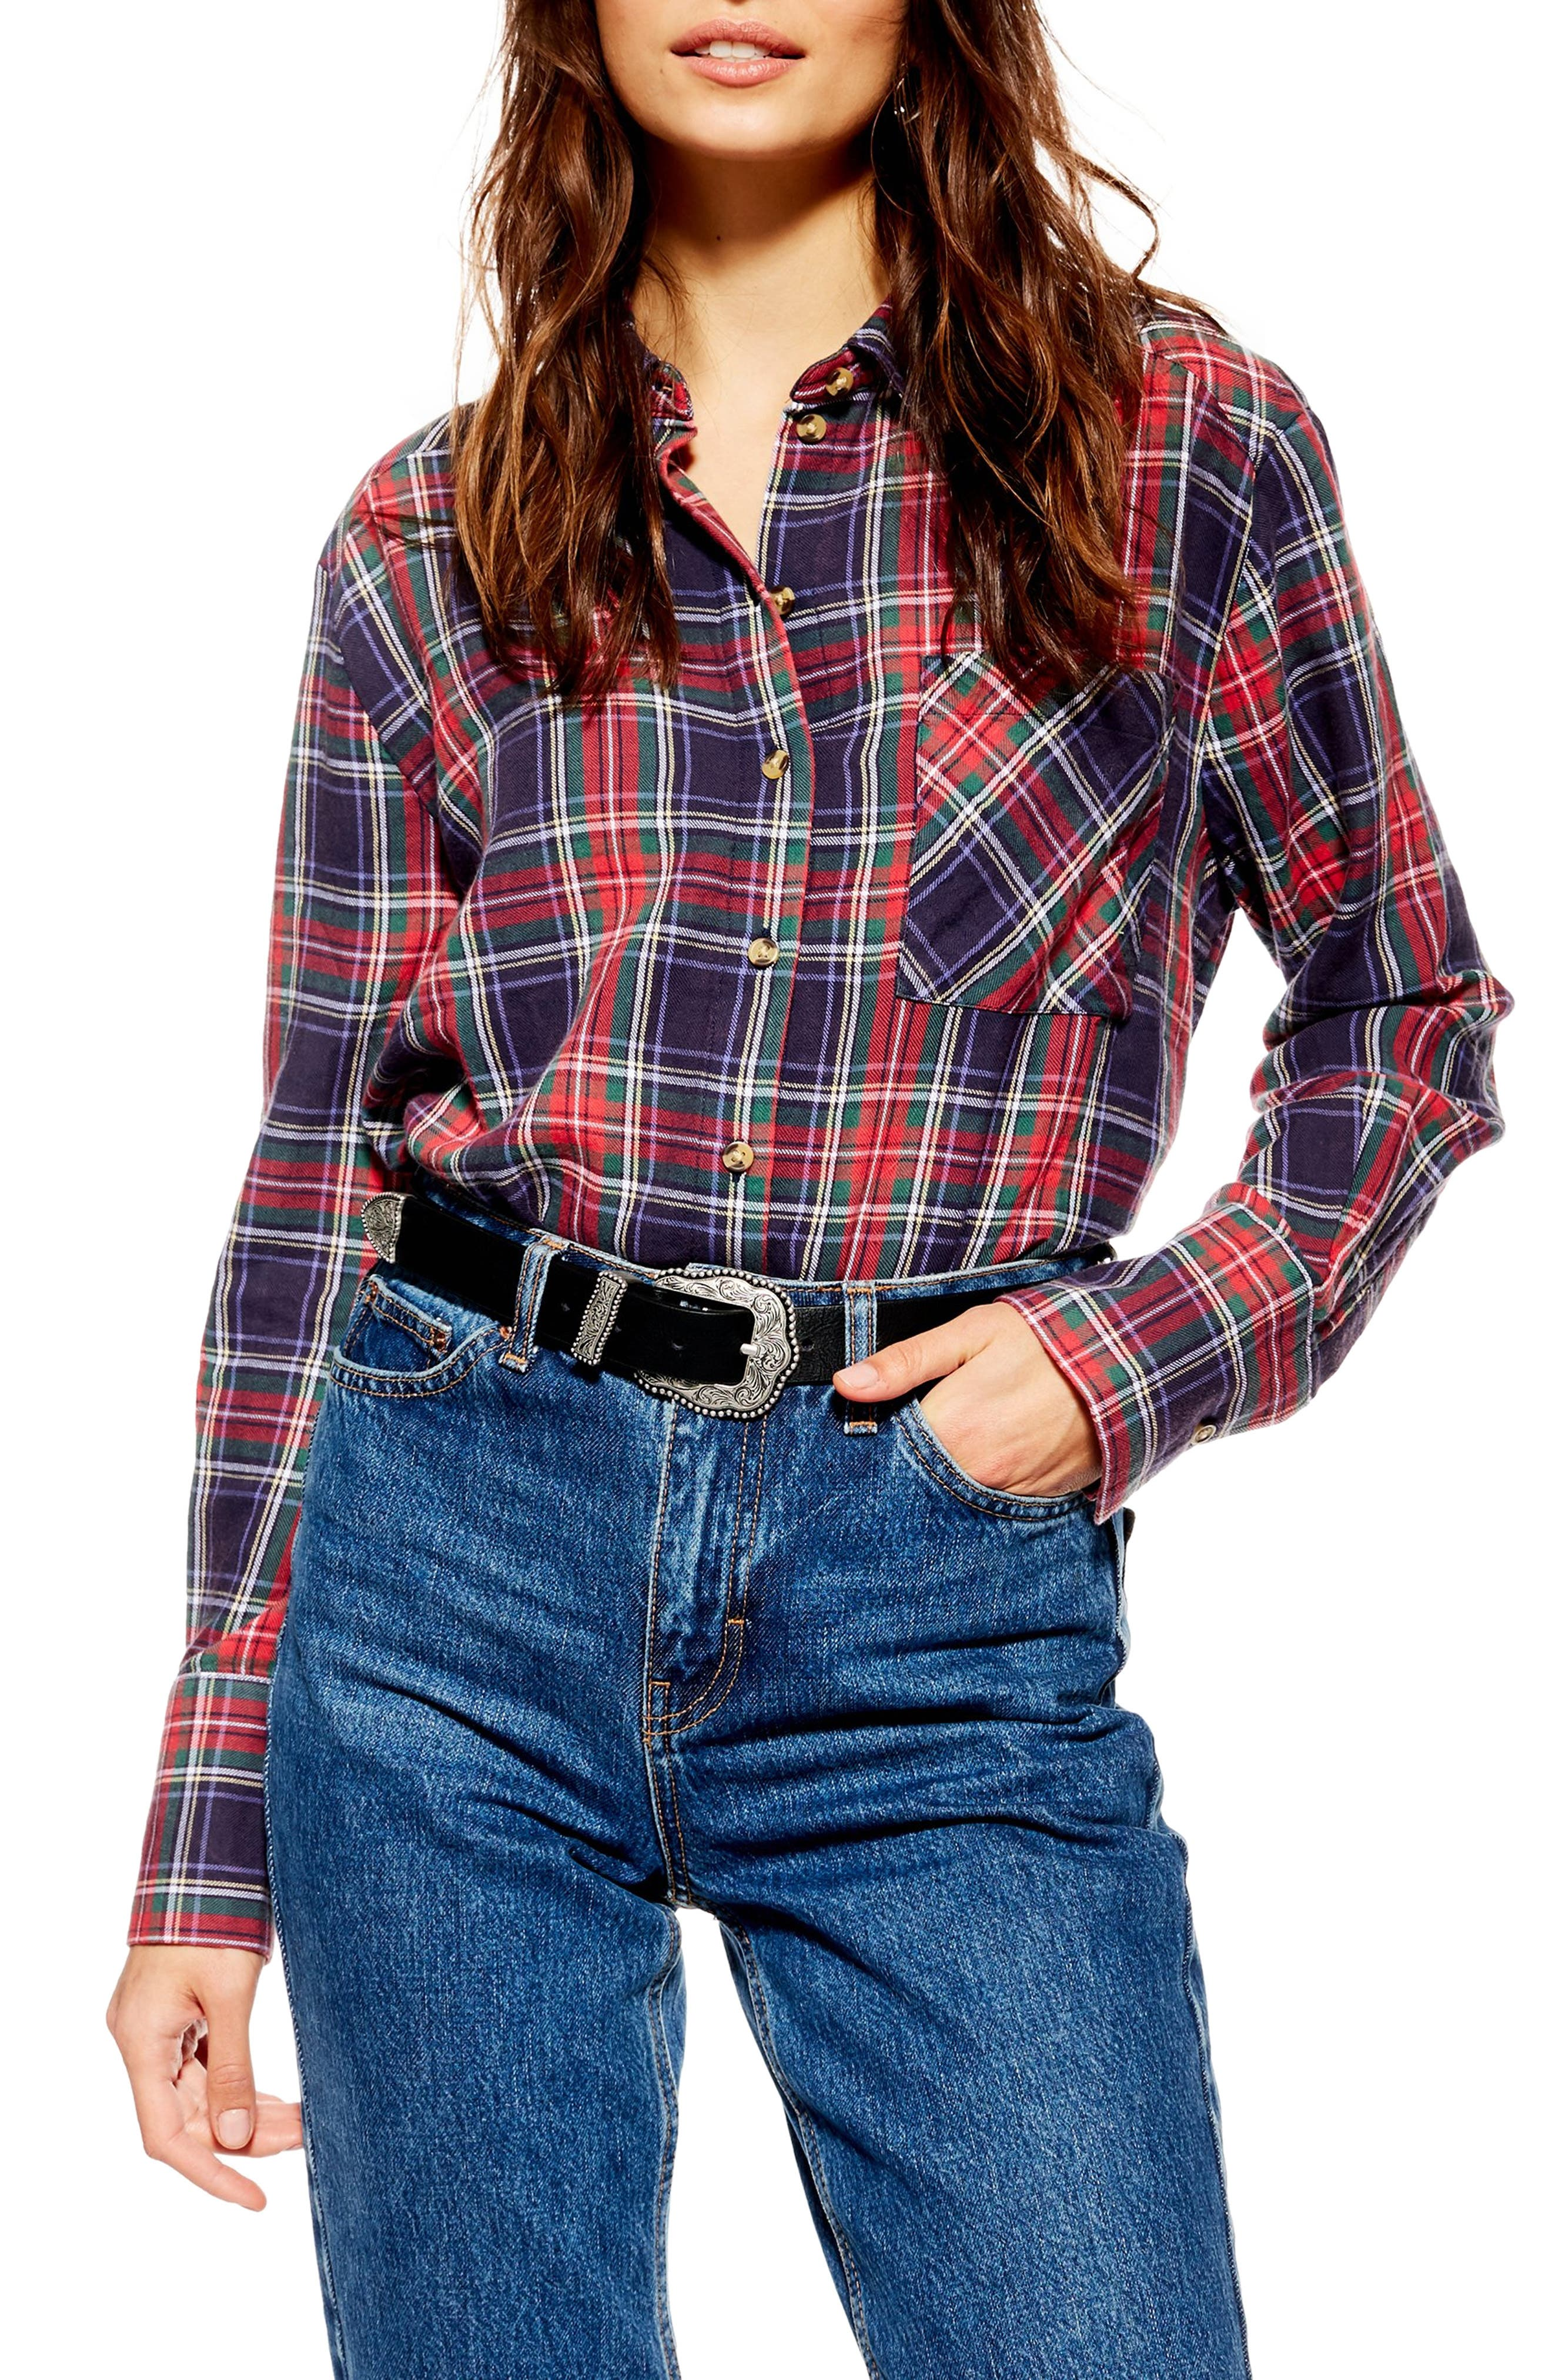 Pacey Washed Check Plaid Shirt,                         Main,                         color, NAVY BLUE MULTI